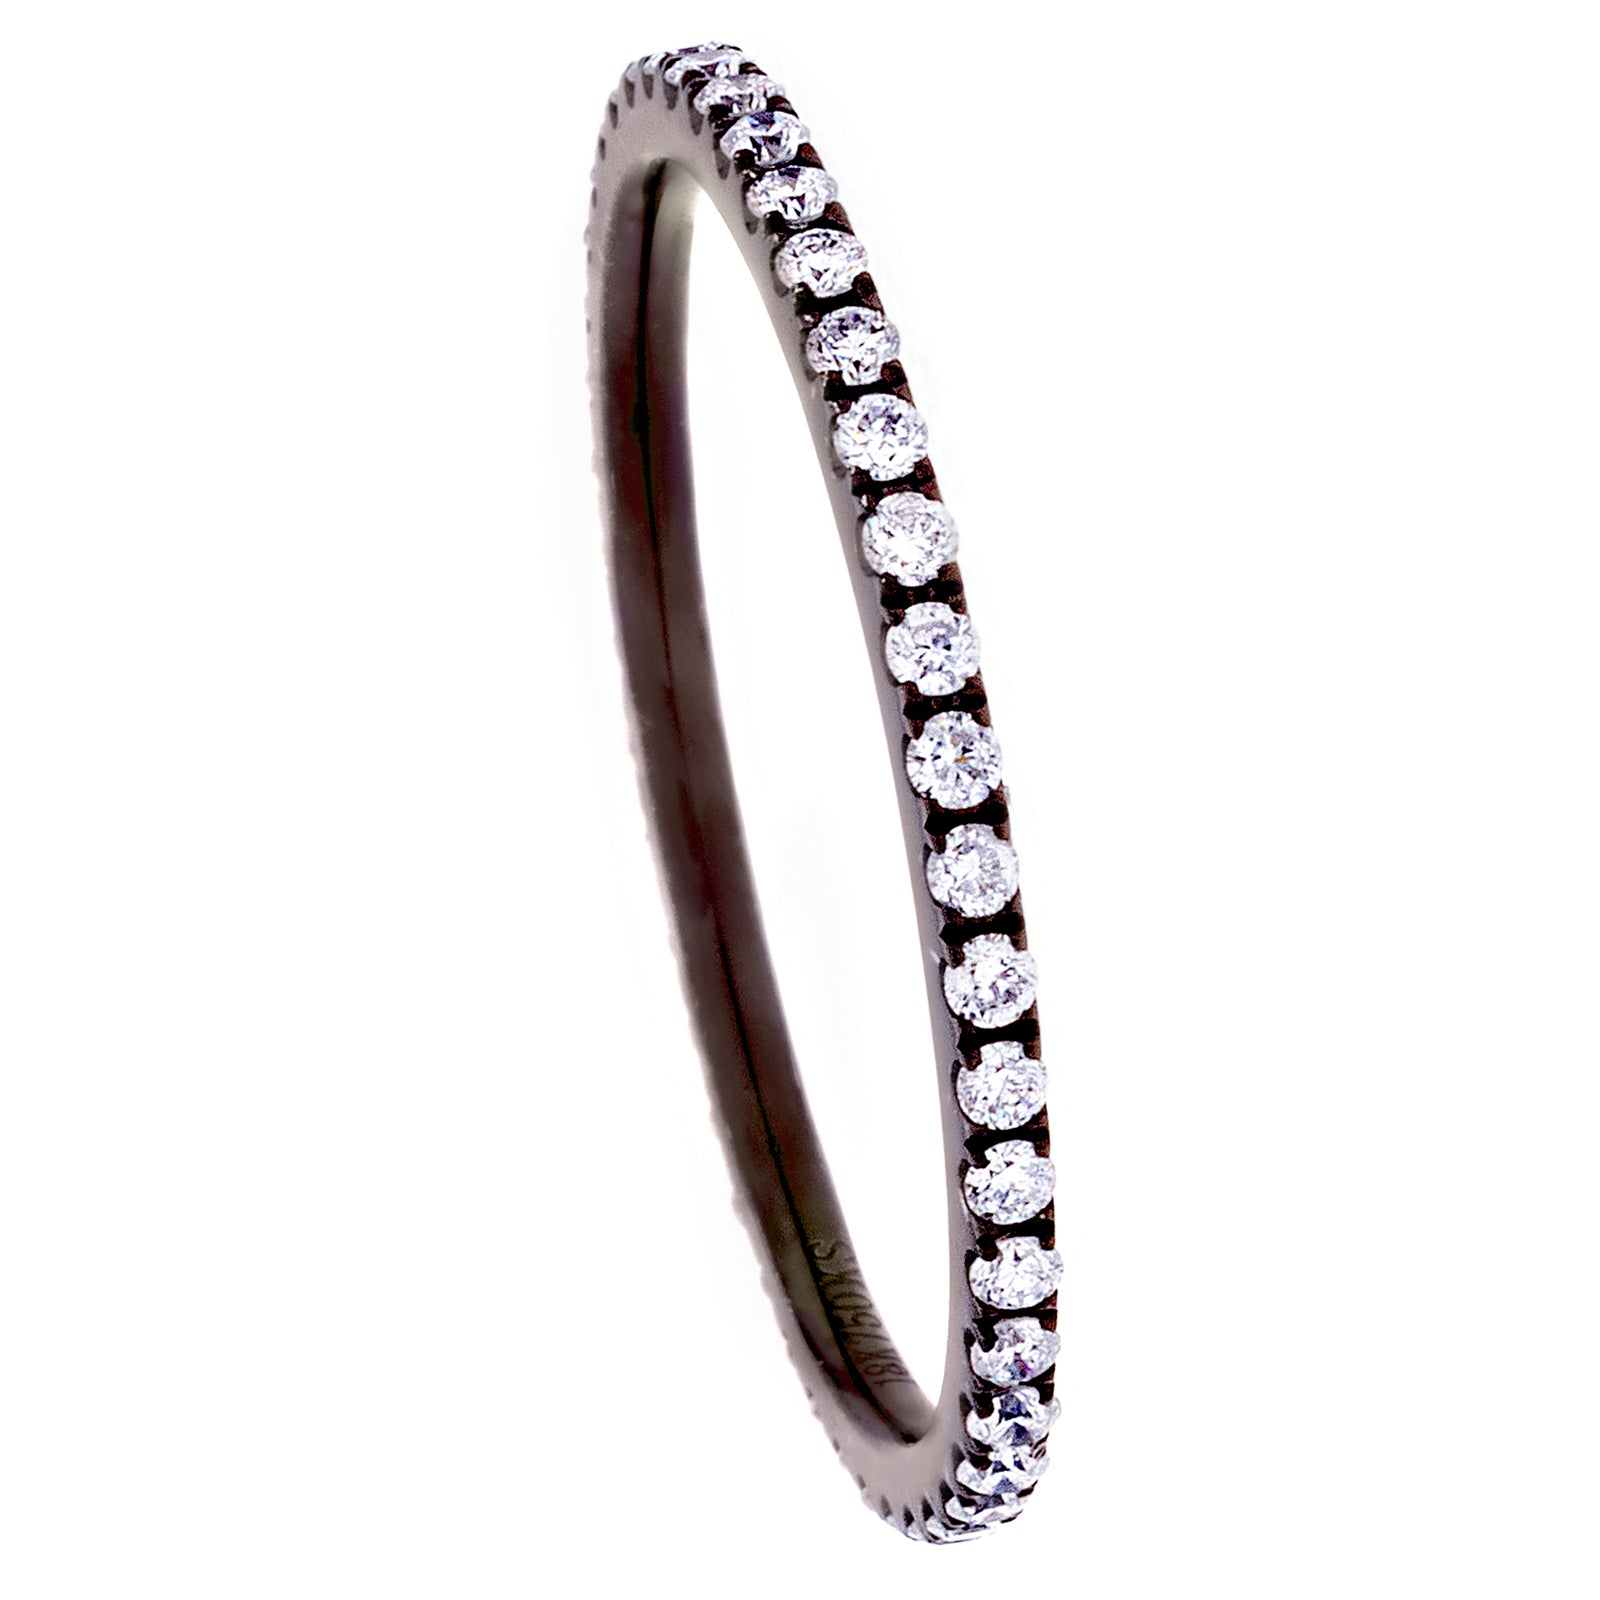 Diamonds & 18K Blackened White Gold Single Band Ring - SOLD/CAN BE SPECIAL ORDERED WITH 4-6 WEEKS DELIVERY TIME FRAME